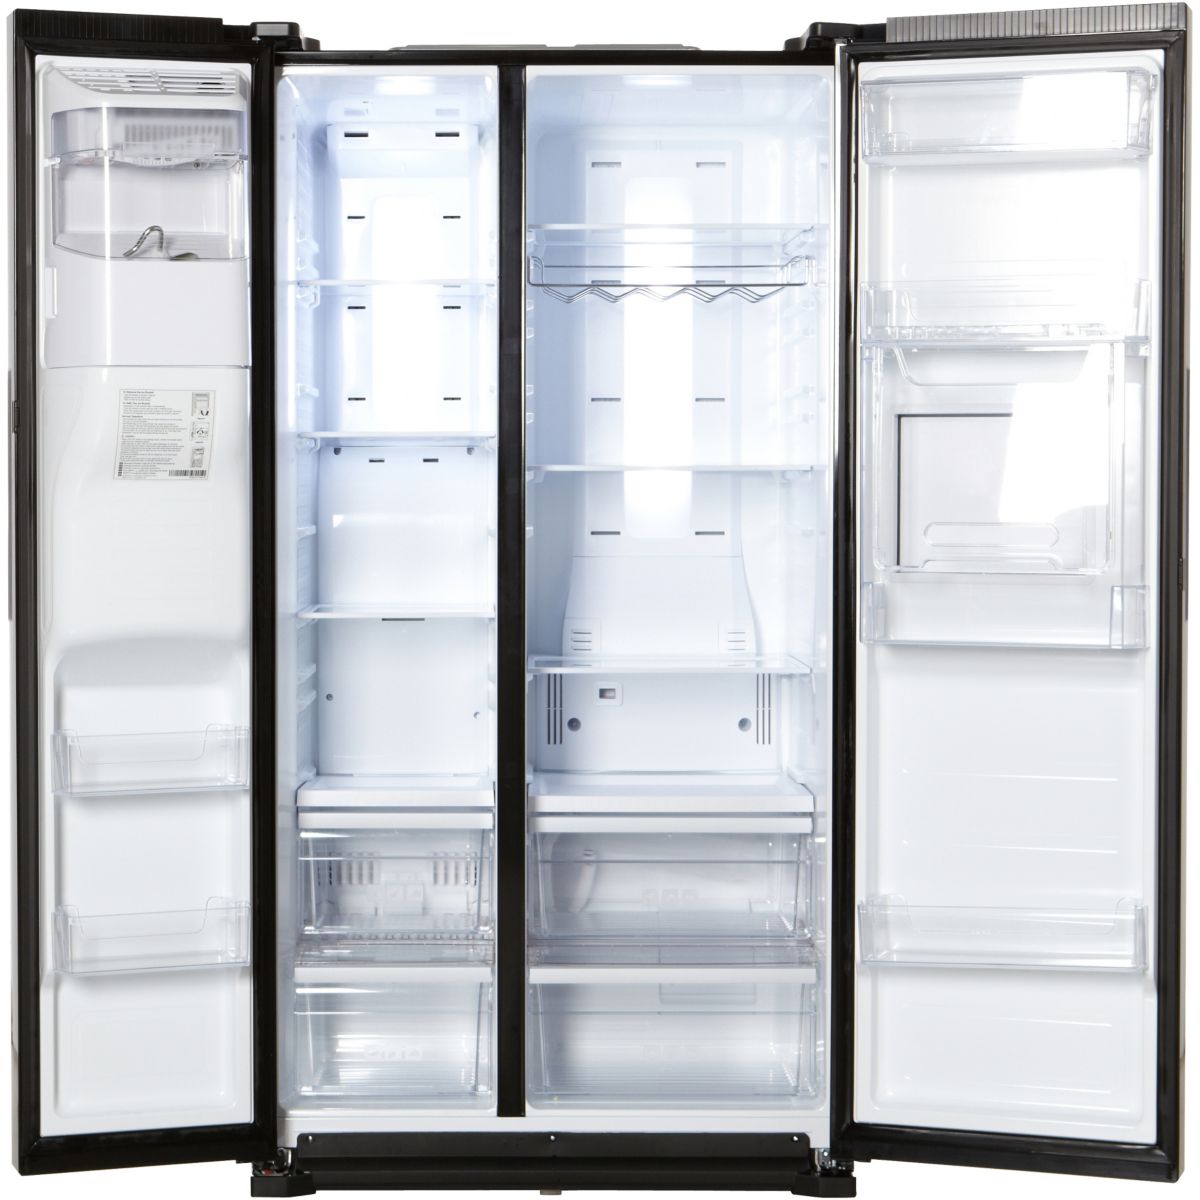 promos refrigerateur samsung soldes 68 discount total. Black Bedroom Furniture Sets. Home Design Ideas